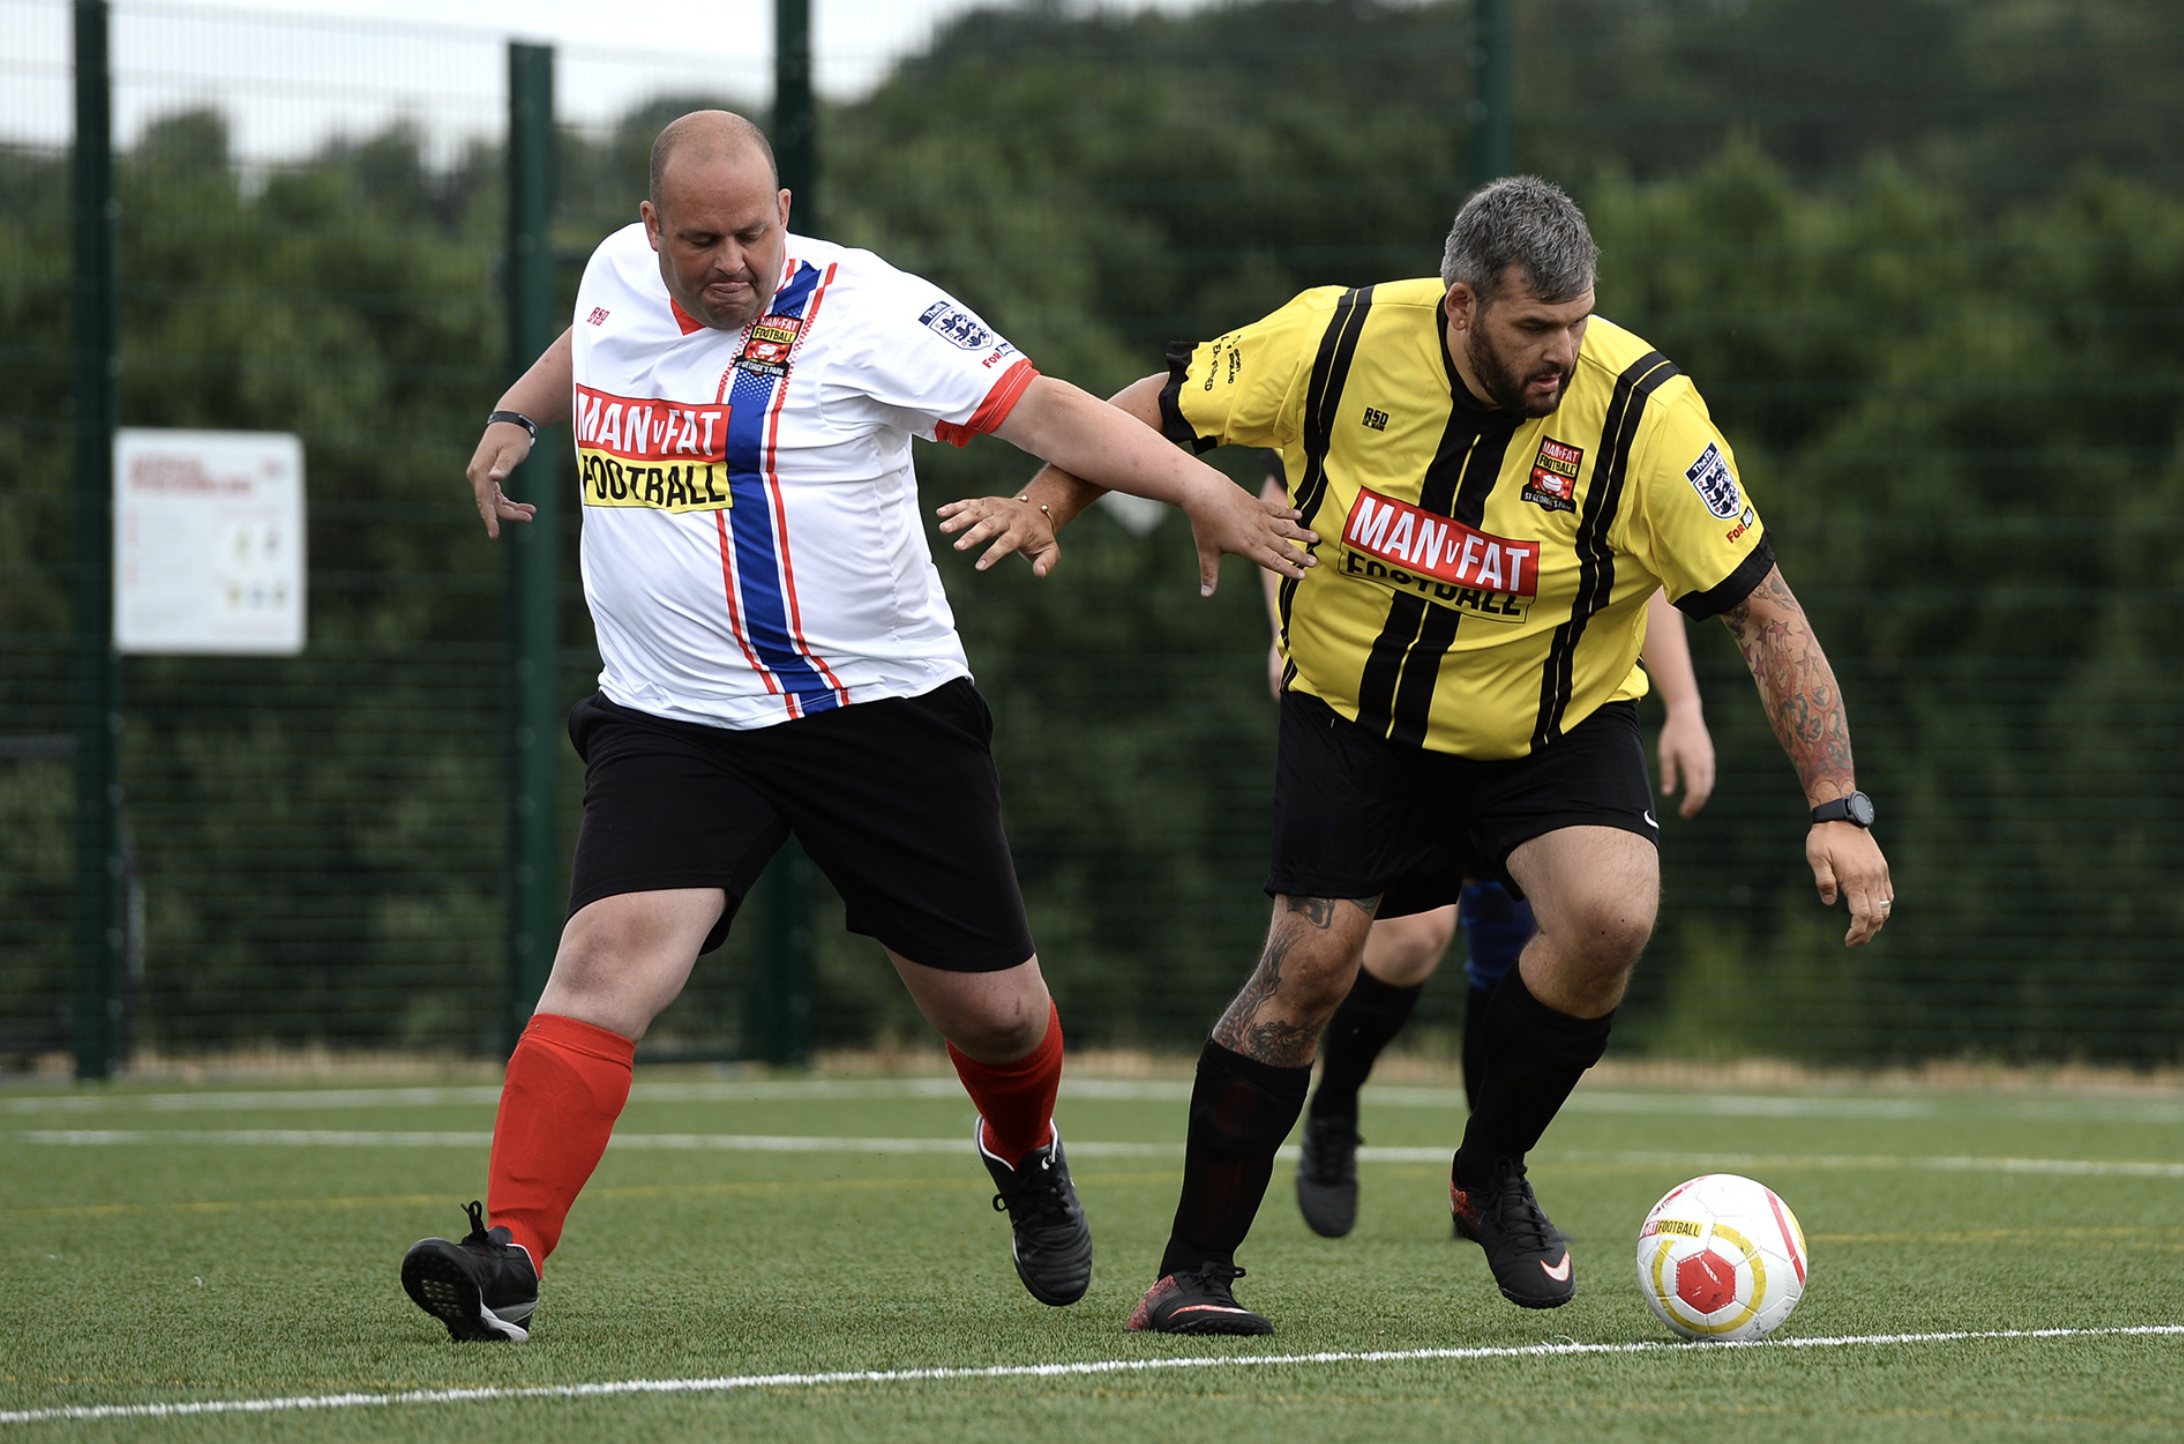 Sign up for MAN v FAT Football for £1 in January!